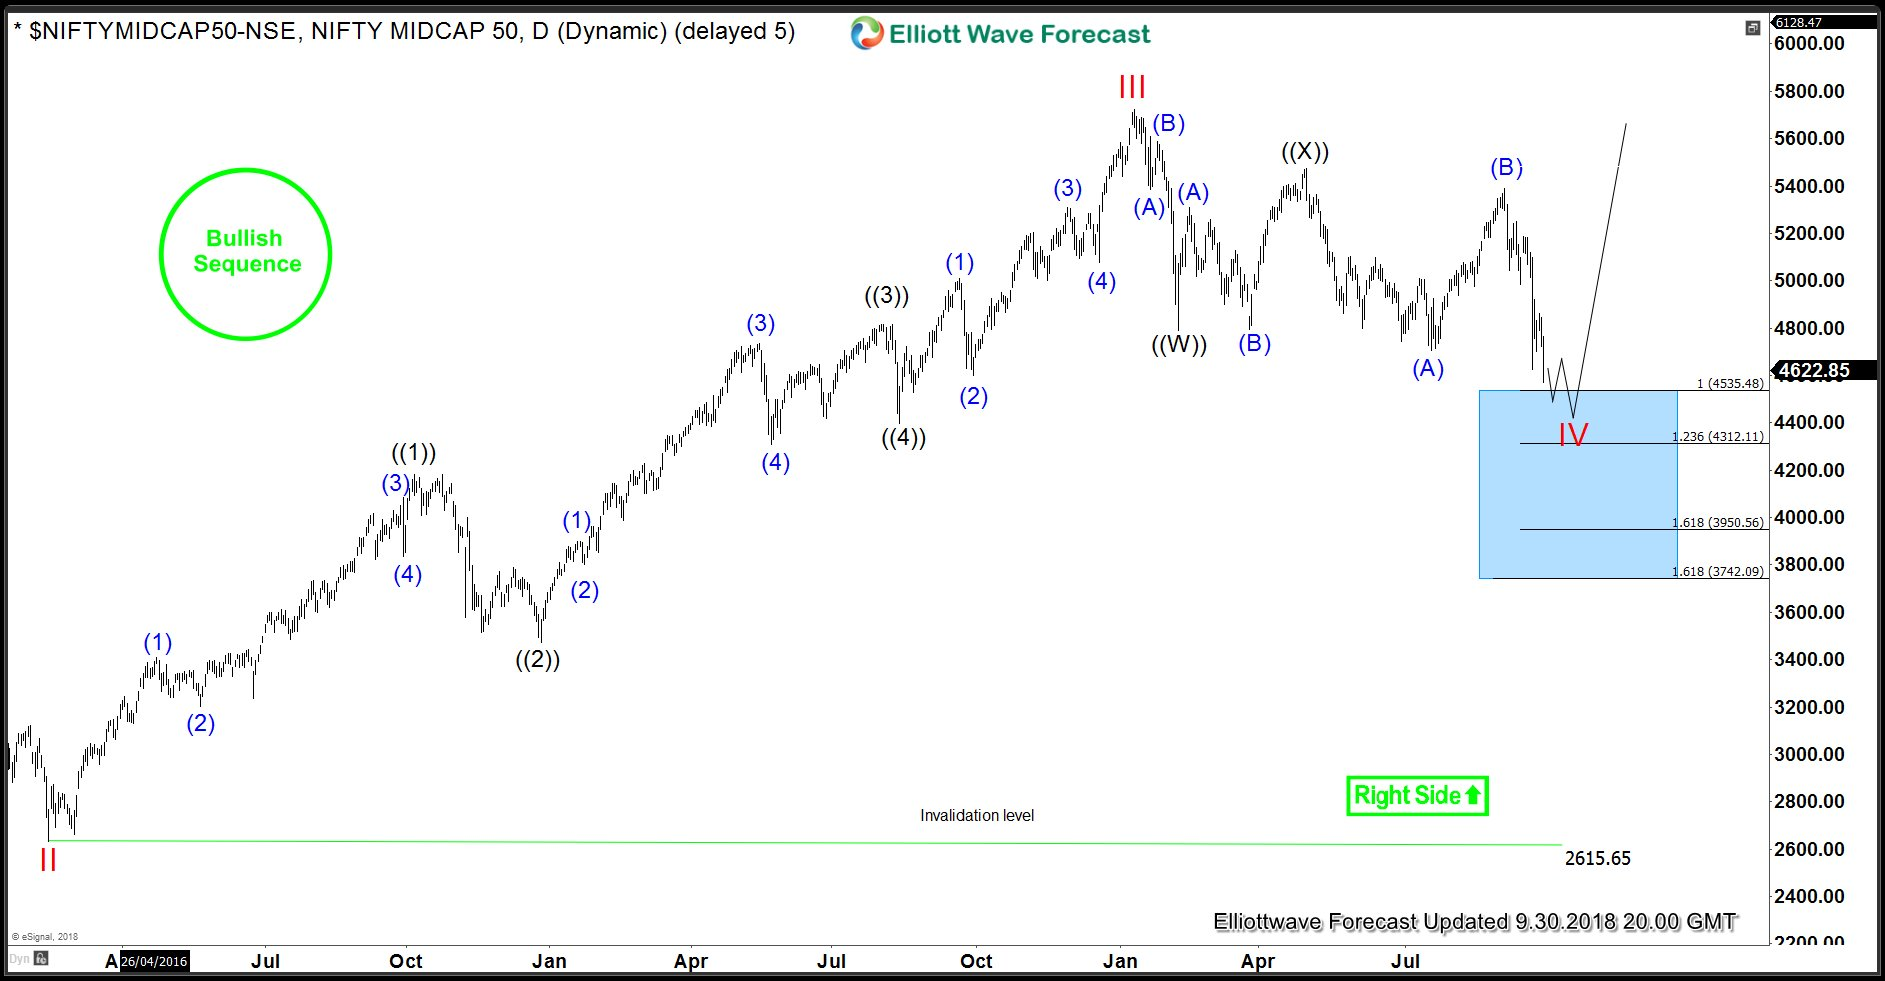 Nifty Midcap Daily Elliott Wave Analysis